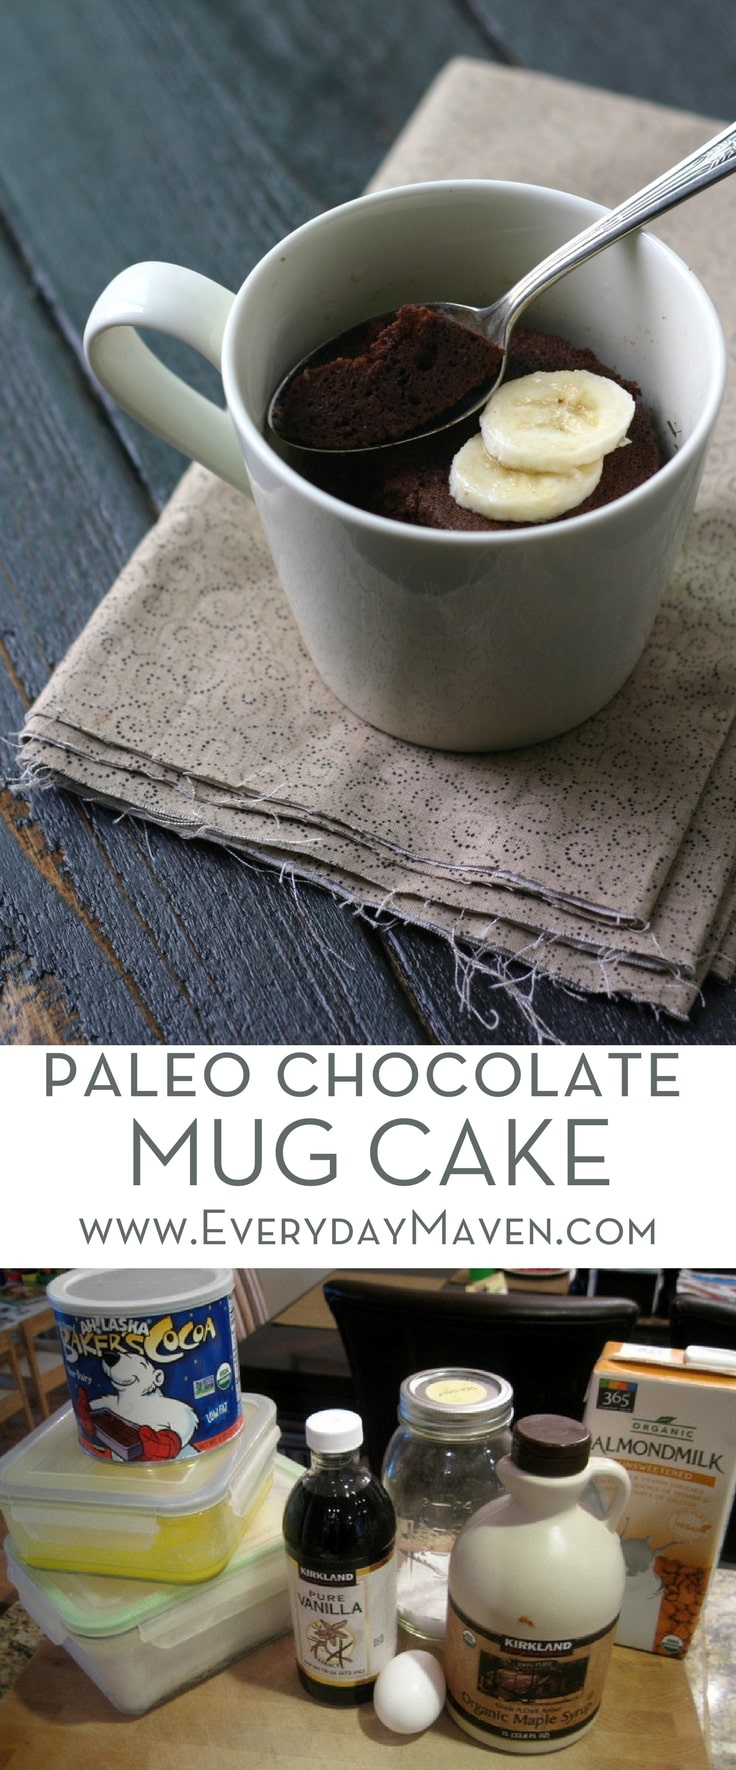 This delicious and easy to make Paleo Chocolate Mug Cake satisfies your sweet tooth and can be made in under 5 minutes! A single serving dessert recipe you will make over and over again!